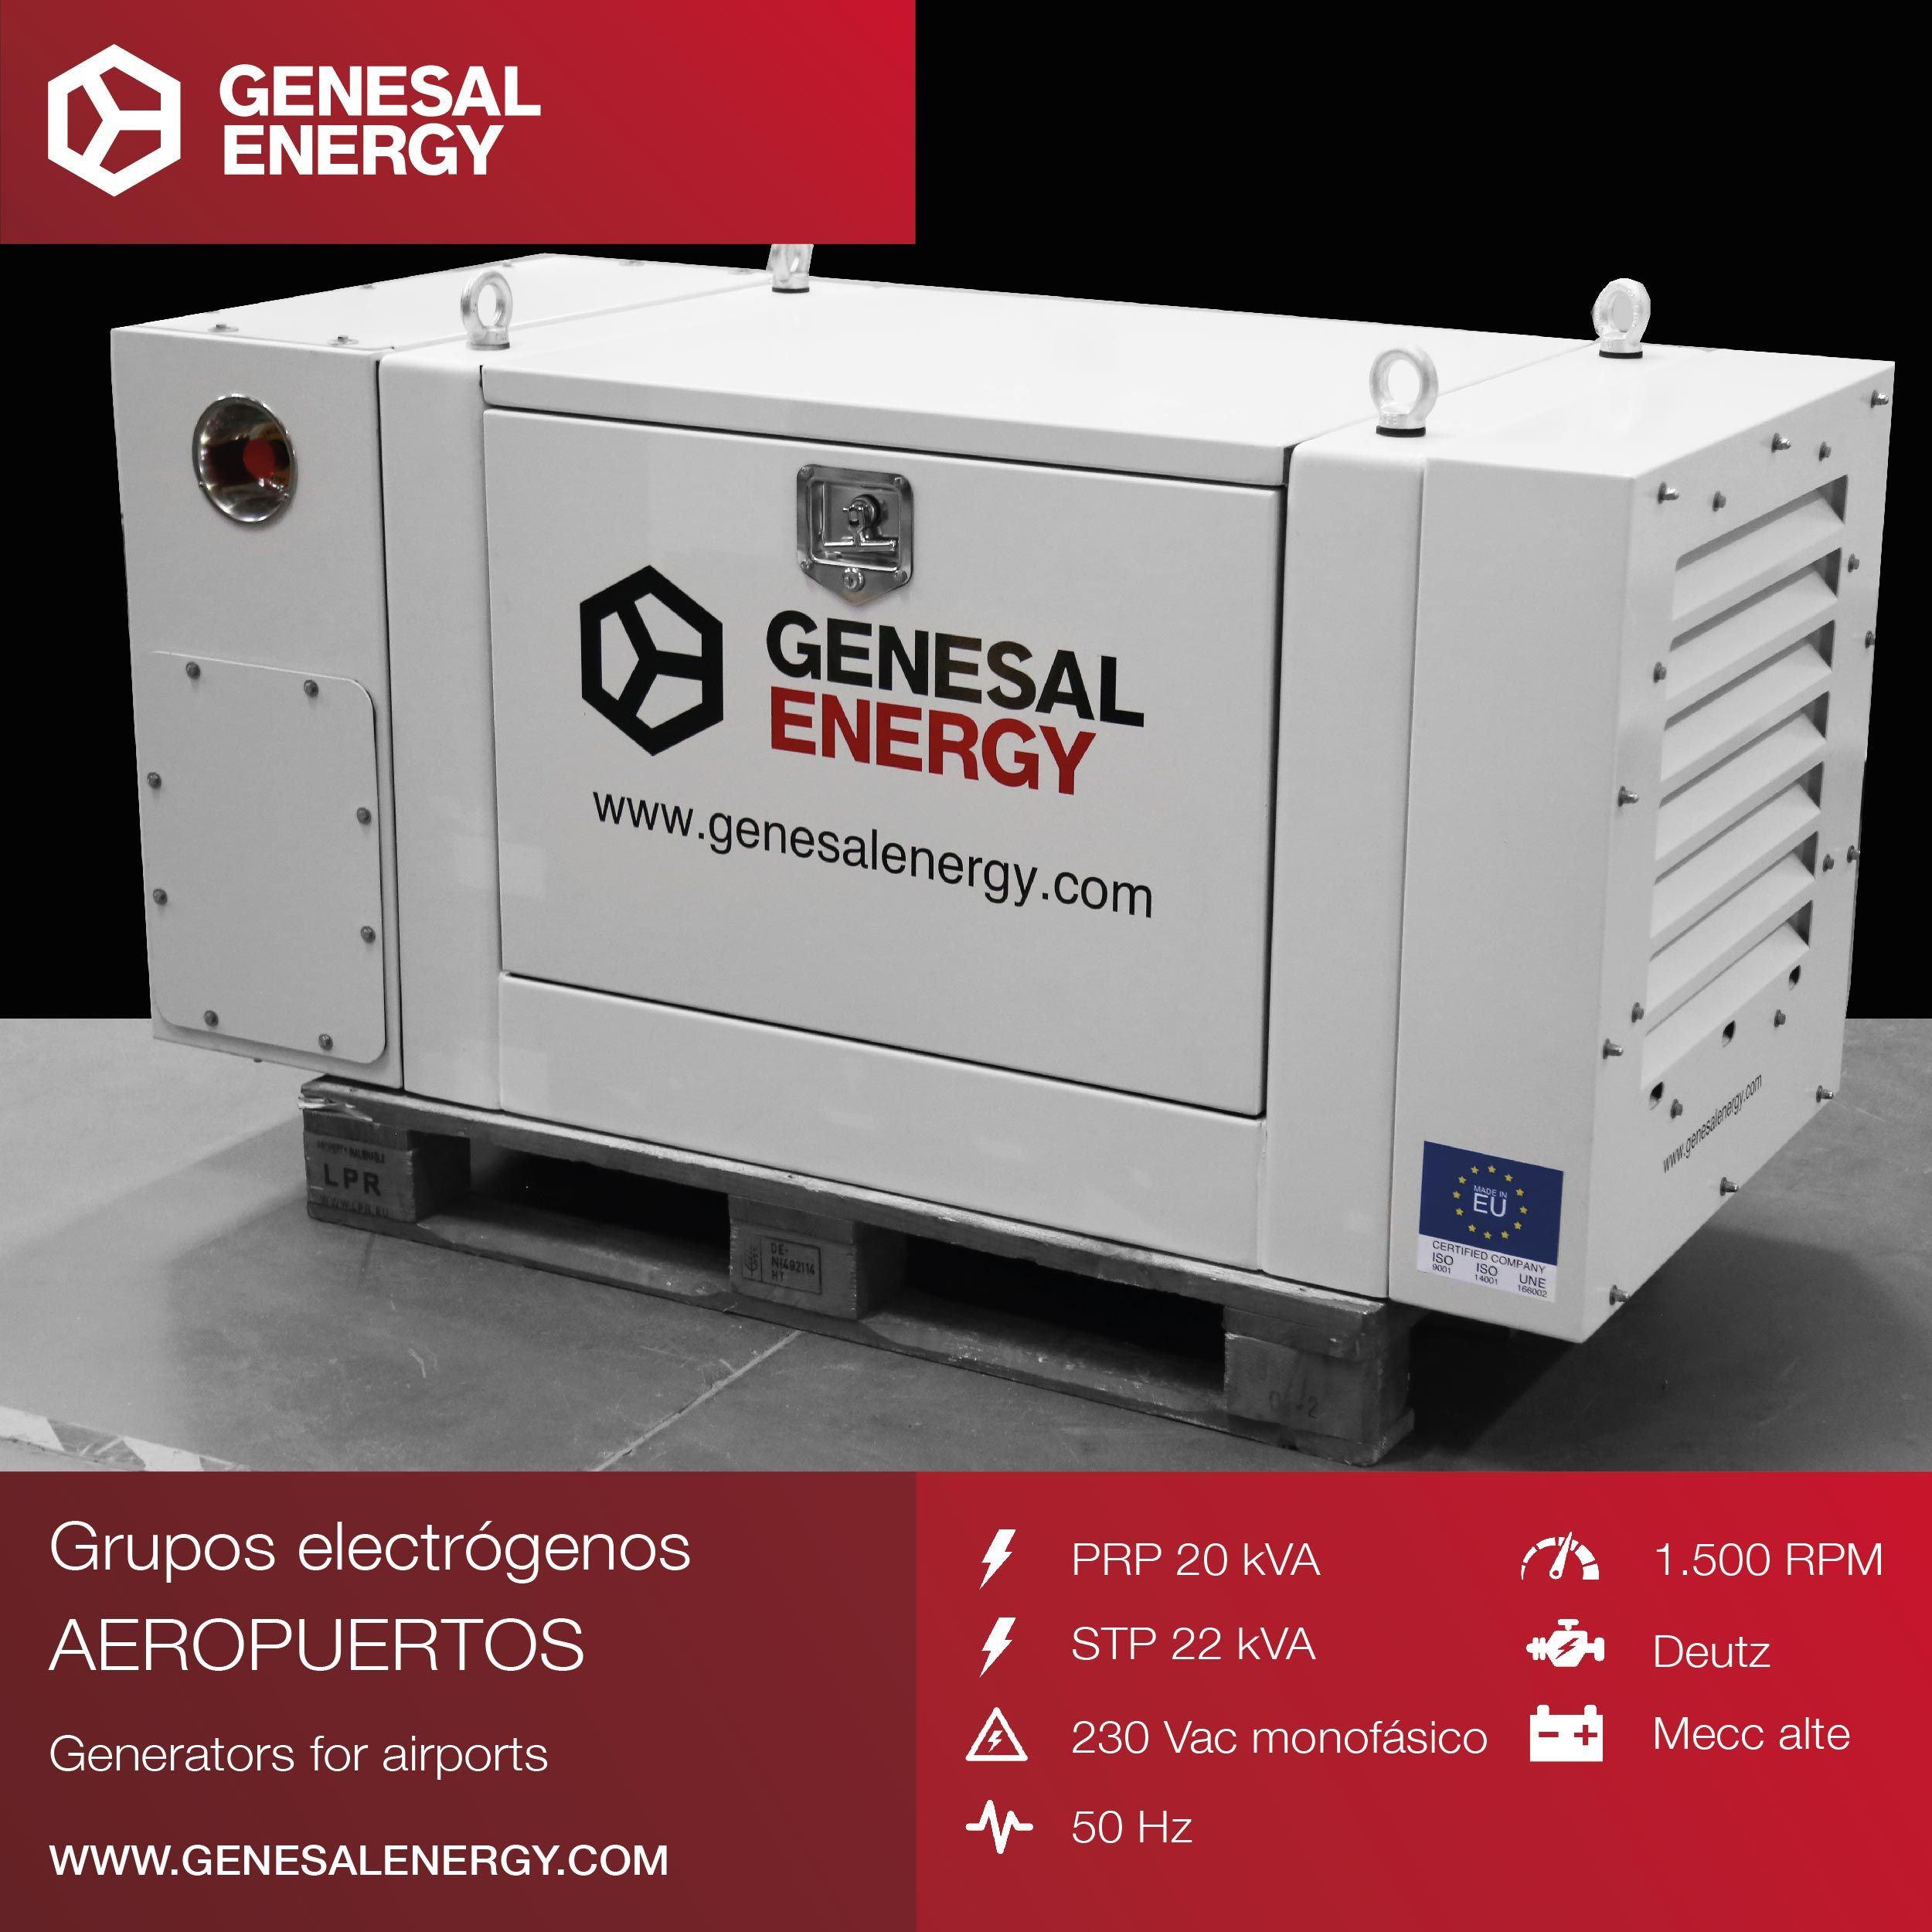 POWER GENERATOR FOR AN AIRPORT MOBILE TOWER - KENYA